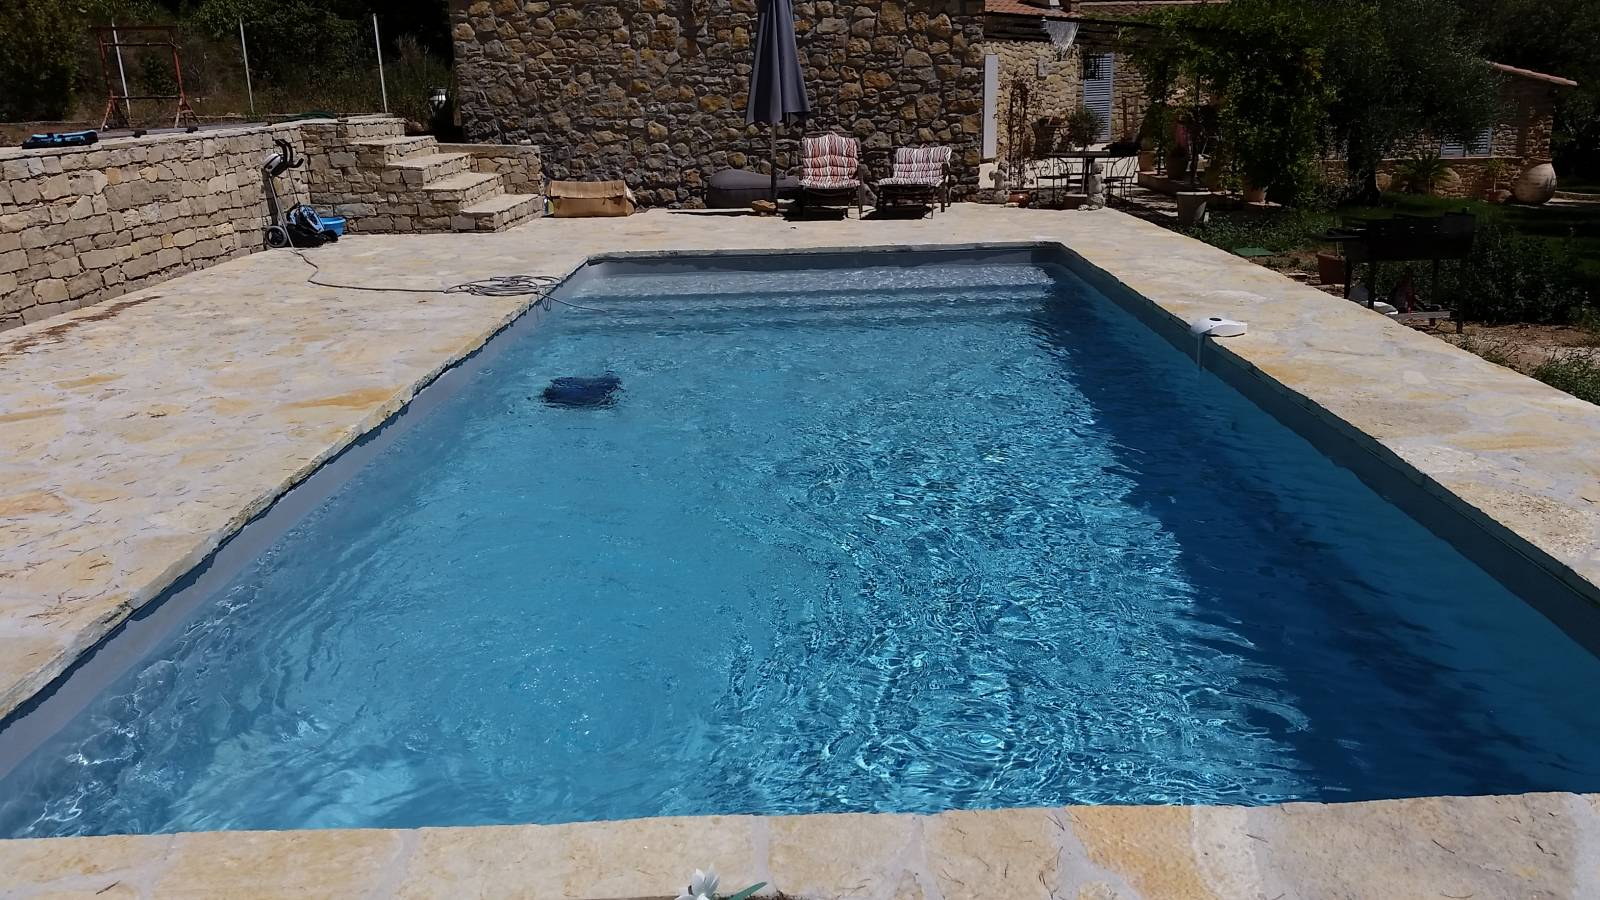 Piscine 9x4m gris clair jce piscines for Piscine tubulaire grise